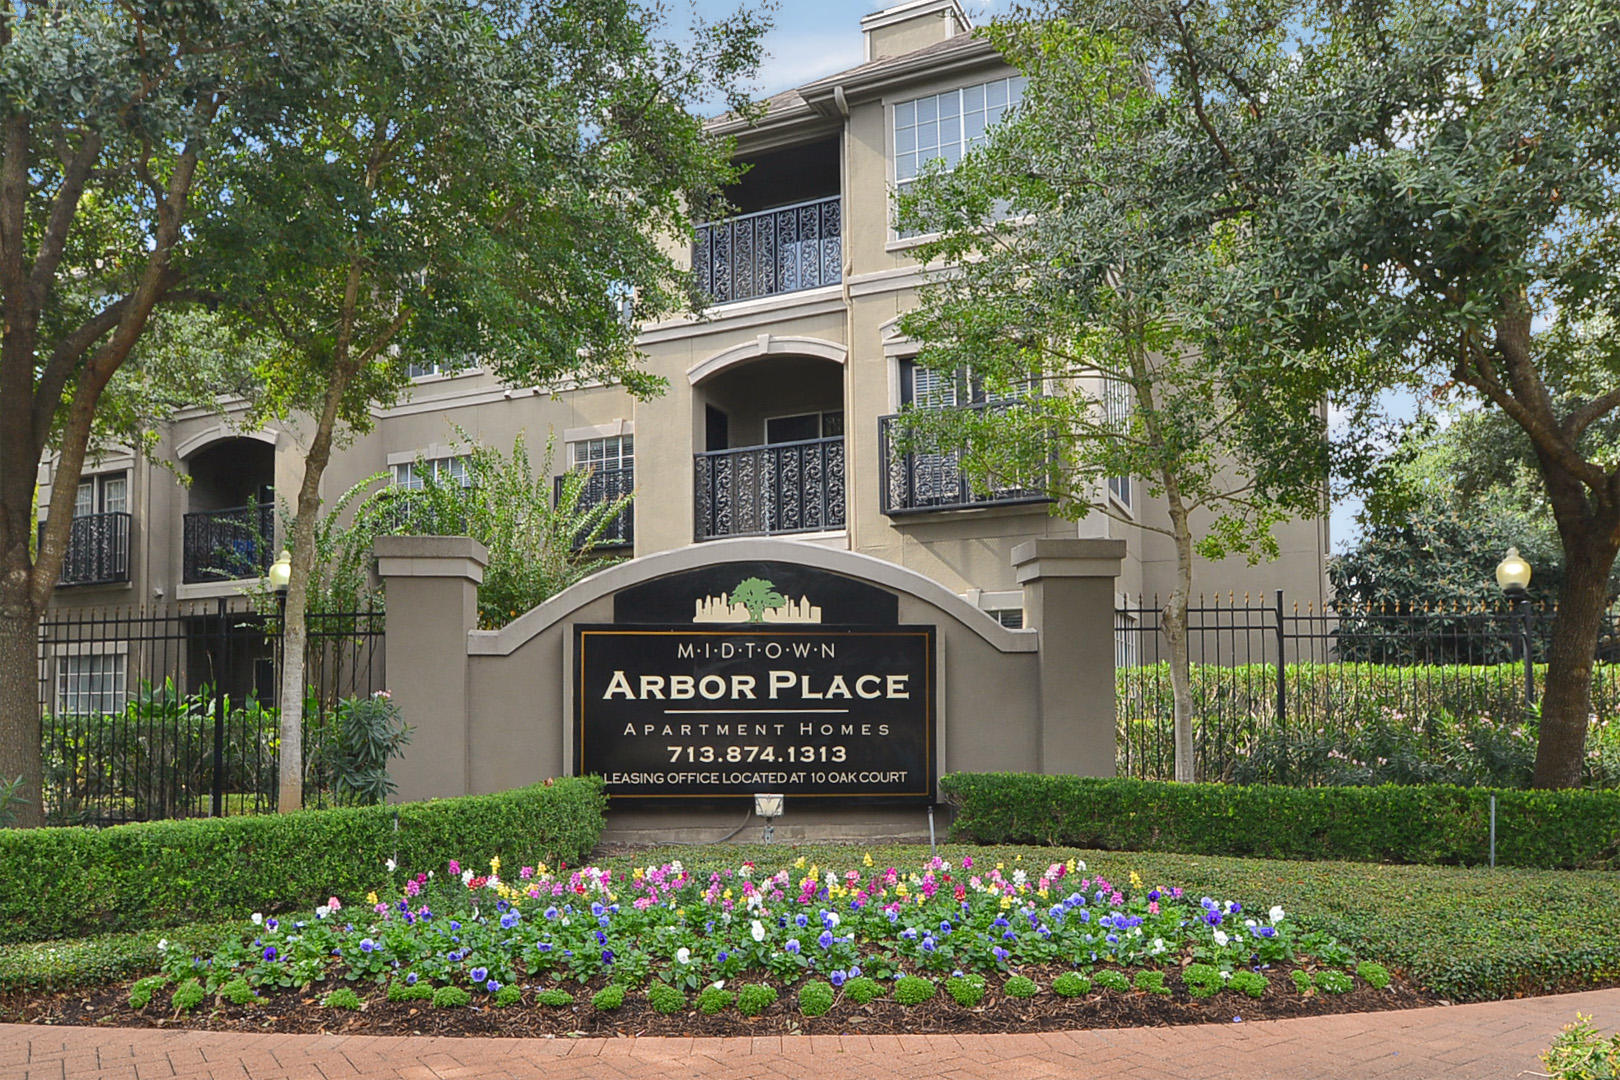 Midtown Arbor Place Apartments in Houston, TX image 9